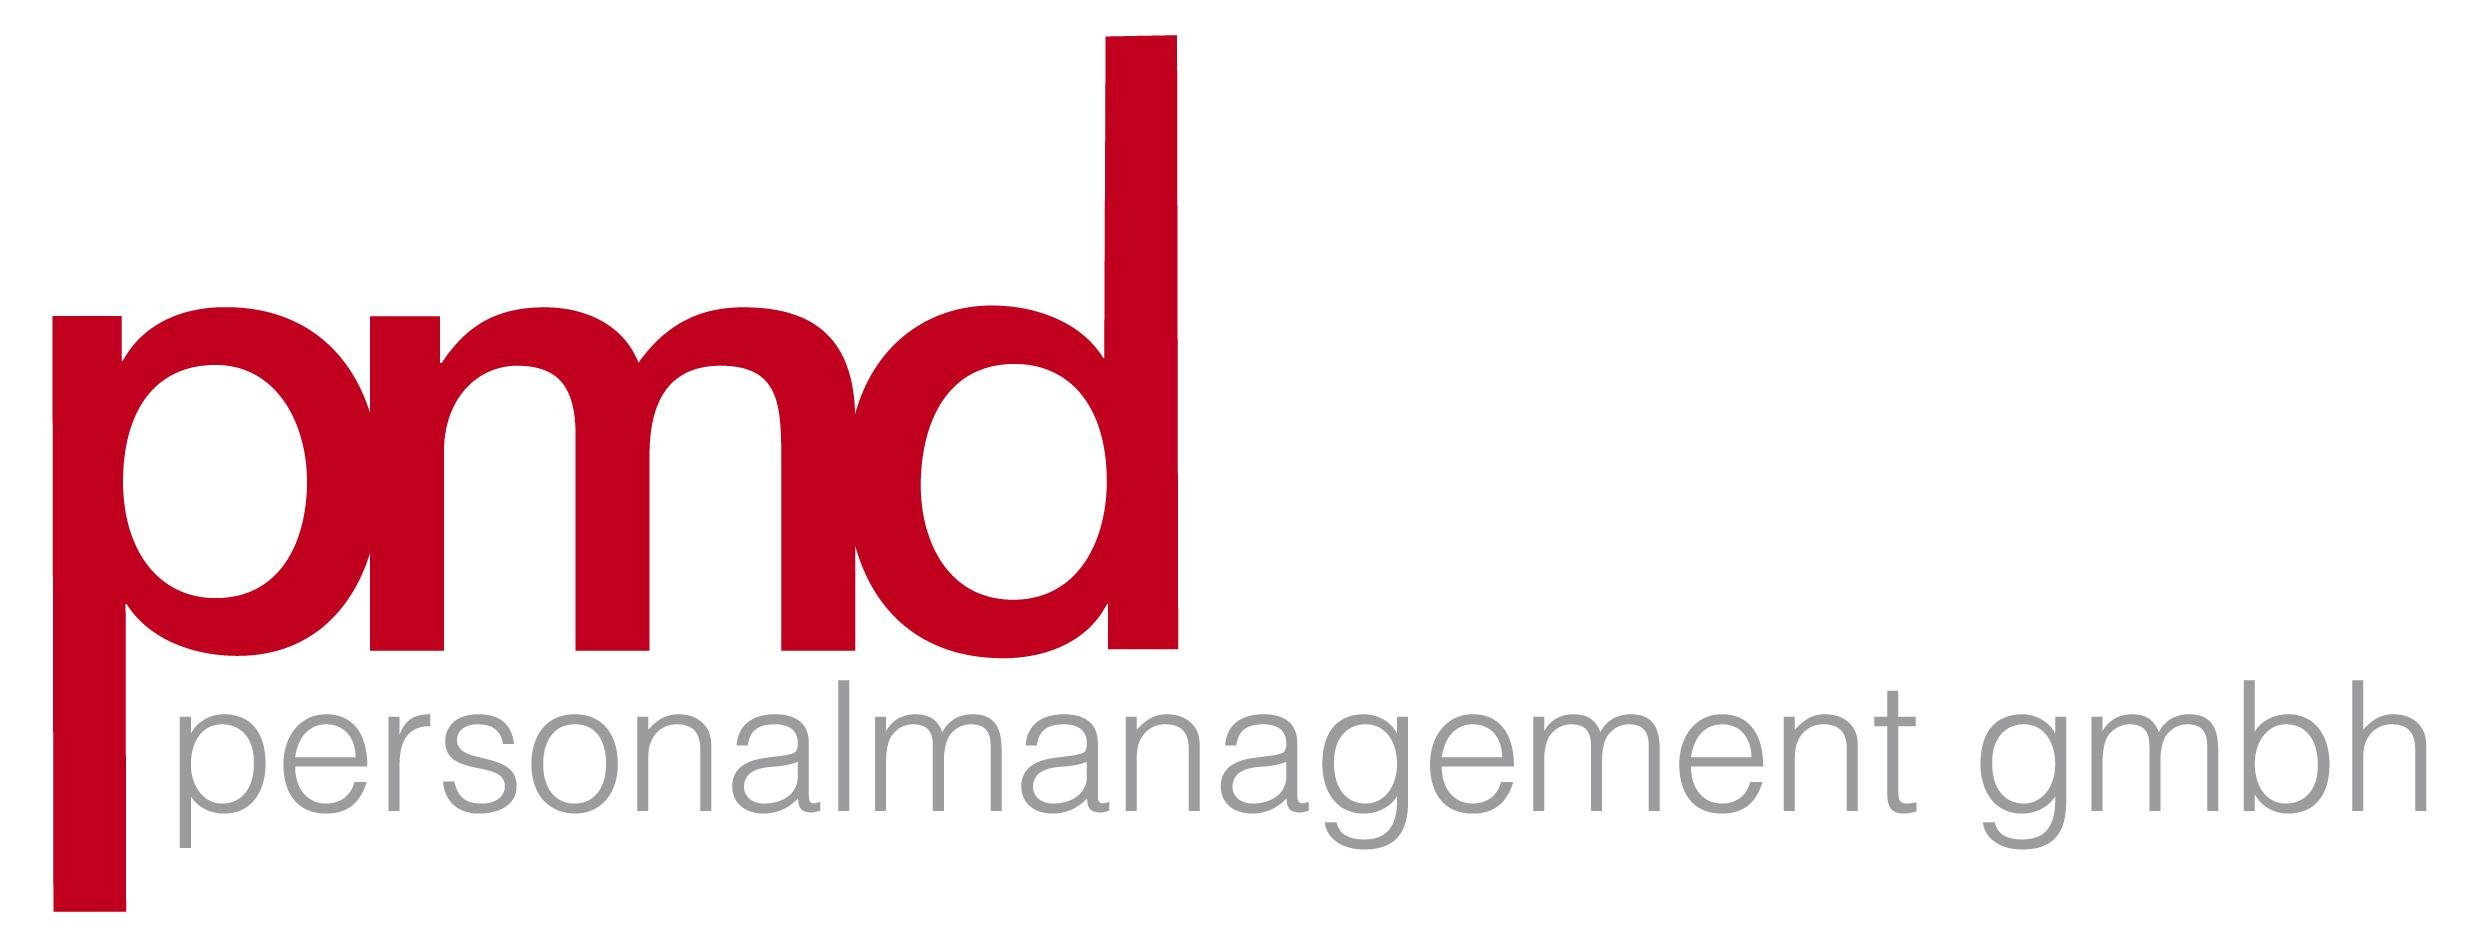 pmd personalmanagement GmbH